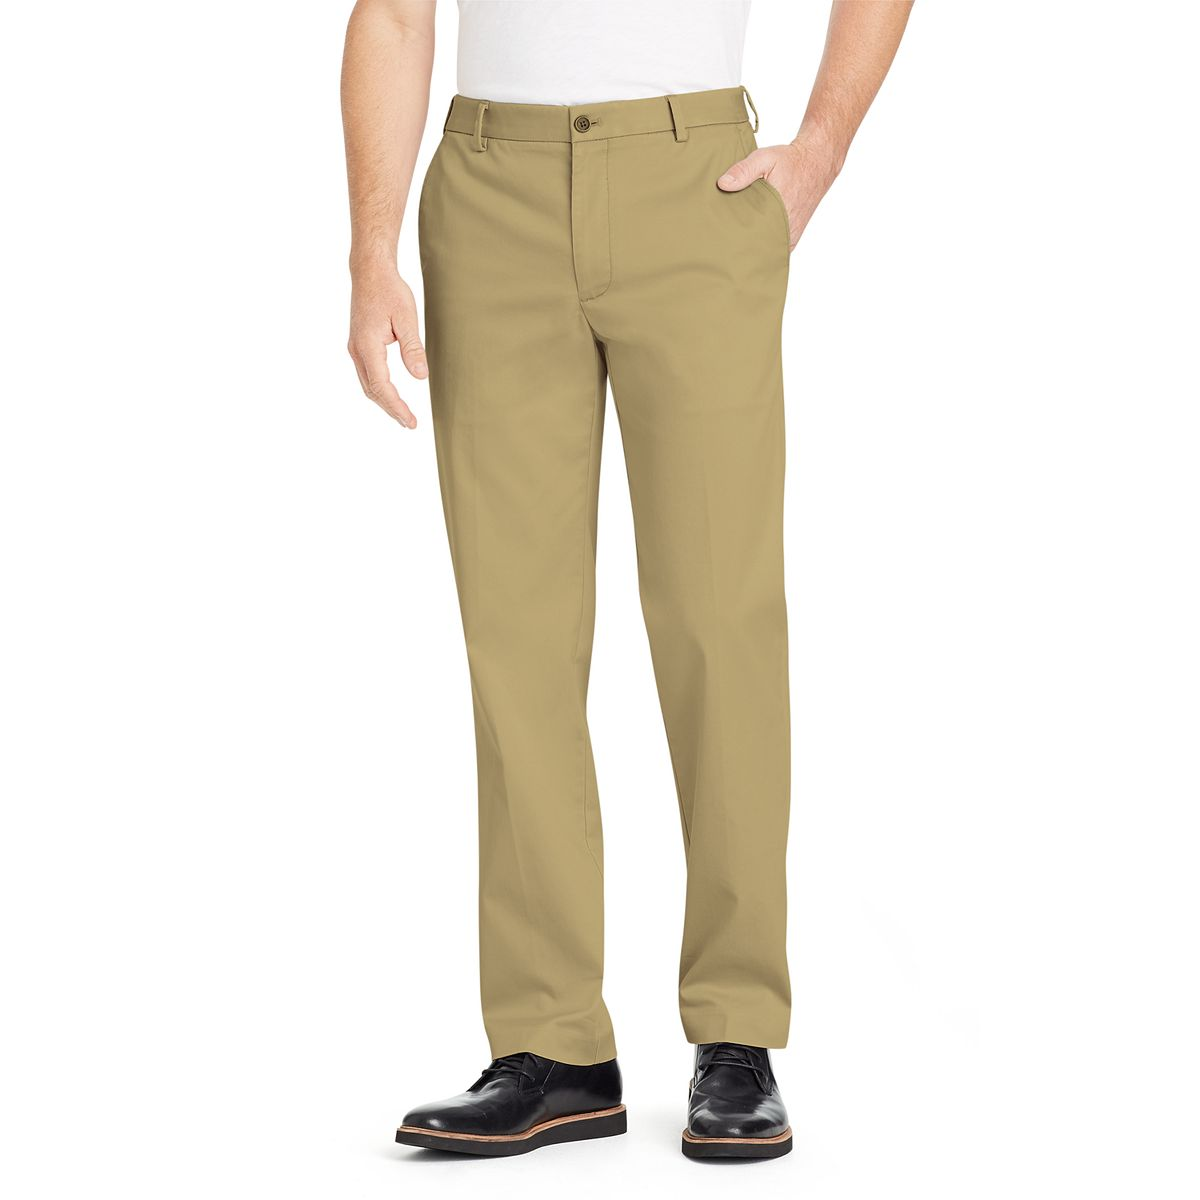 Van Heusen Mens Air Chino Straight-Fit Dress Pants